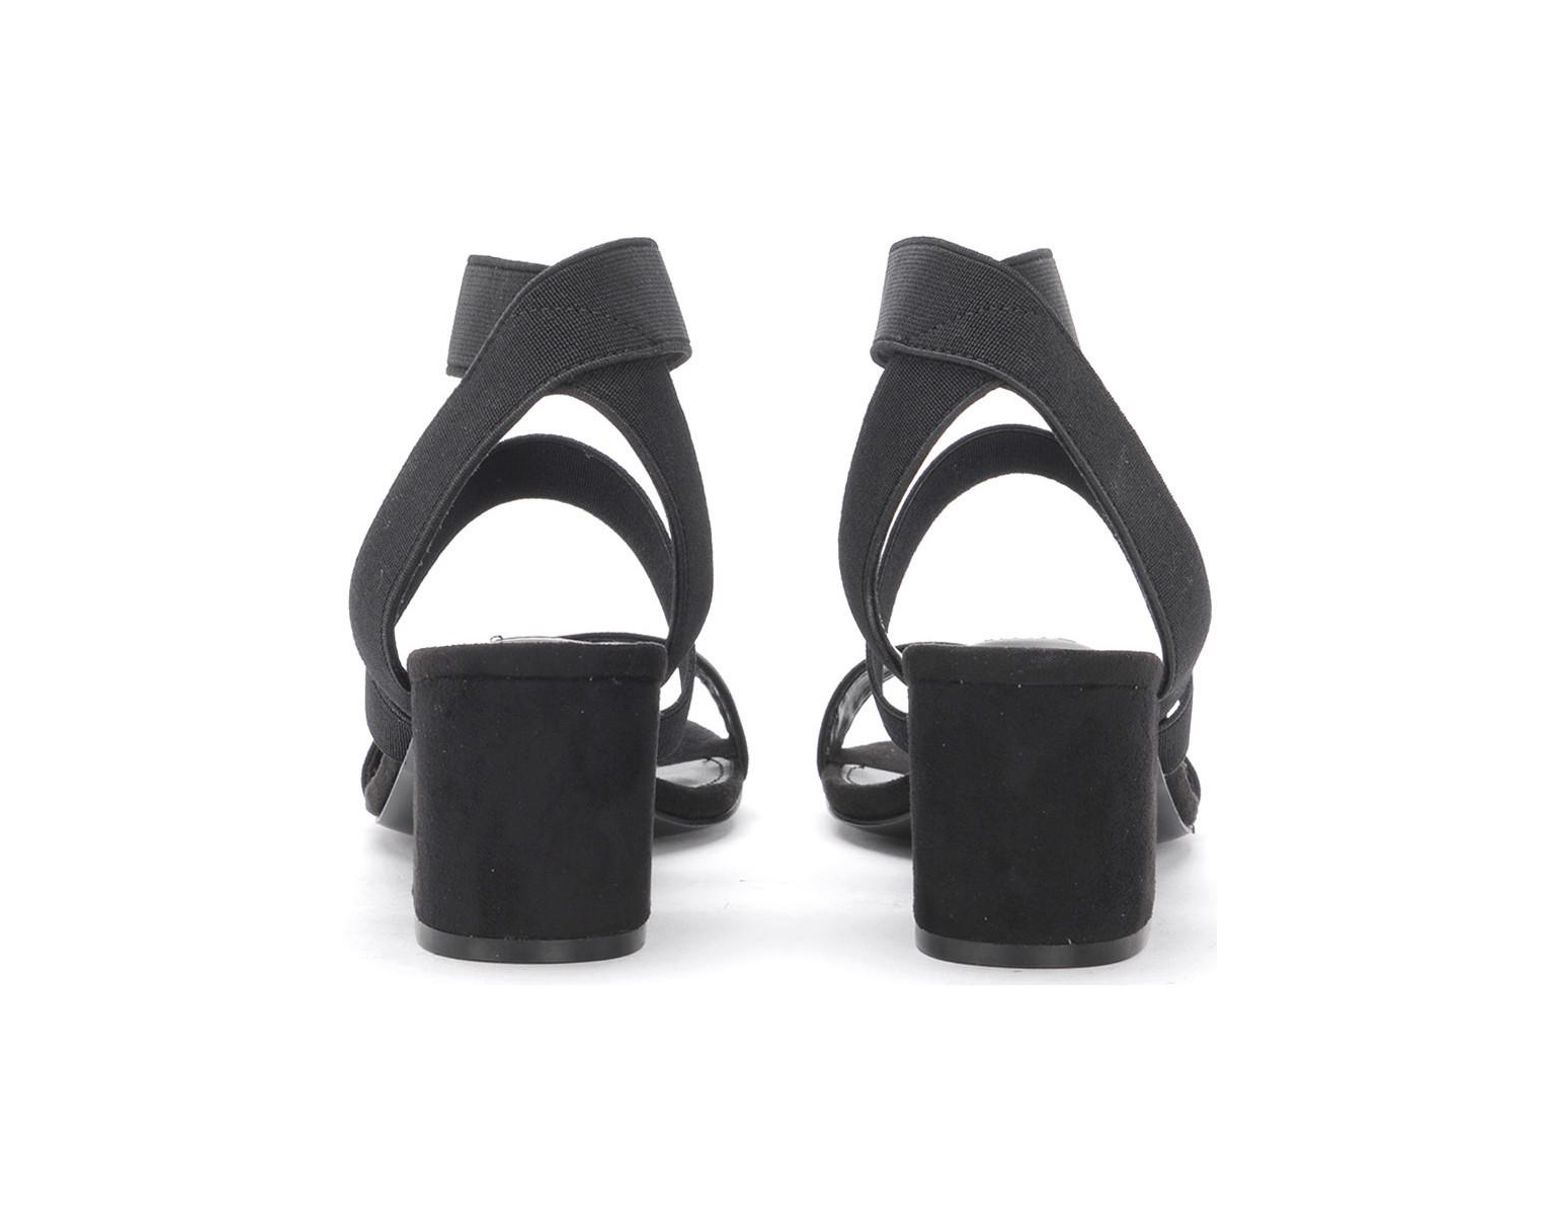 fb924072477 Steve Madden Isolate Elax Fabric And Black Vegan Suede Sandal ...